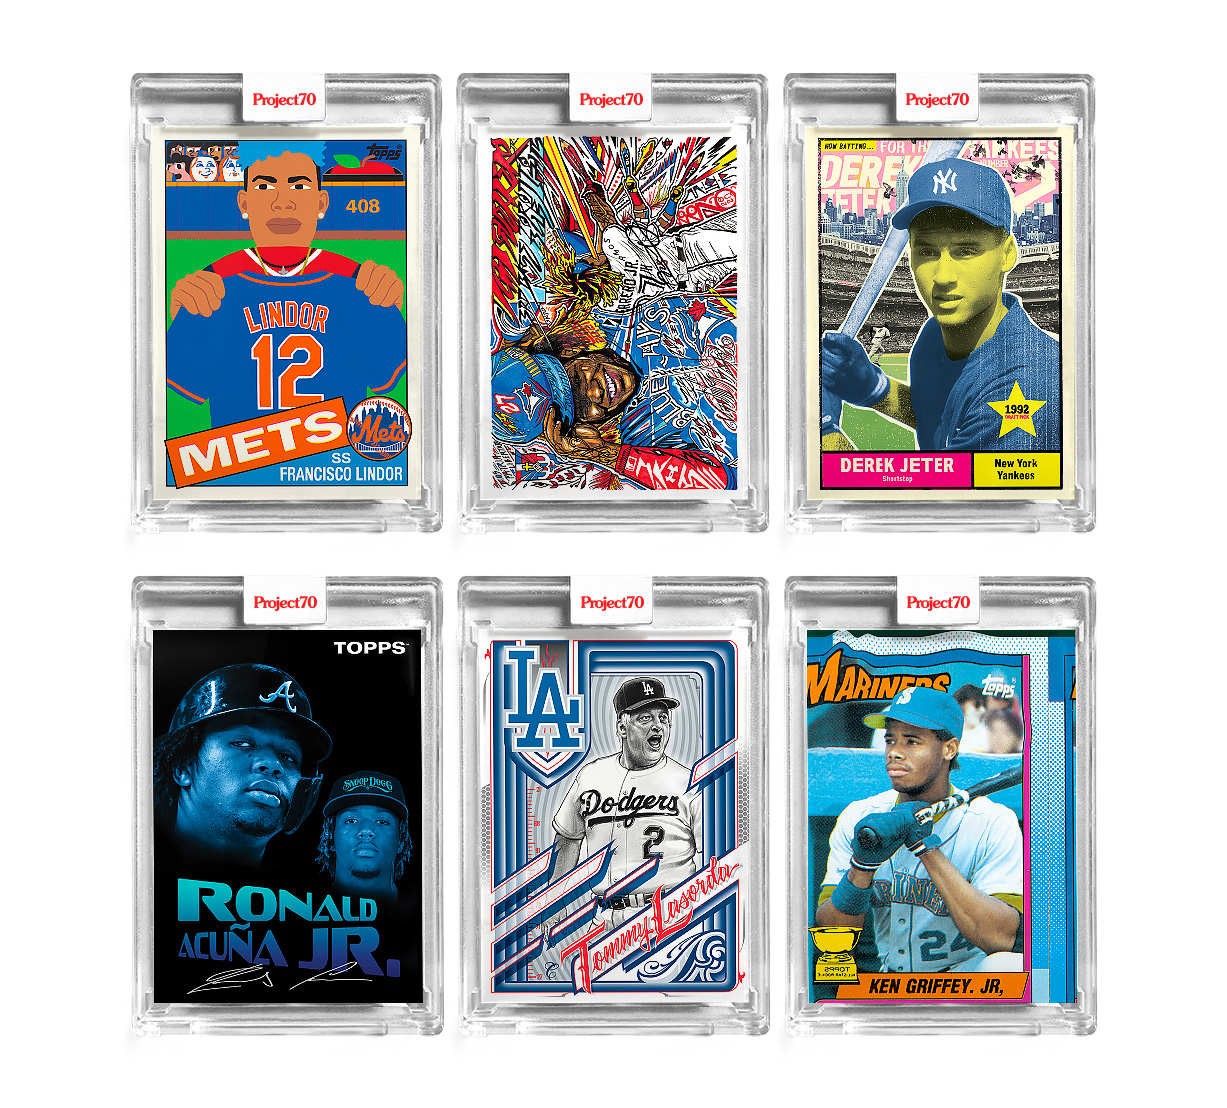 Topps Celebrates 70 with Artist Edition Project 70 Cards at werd.com